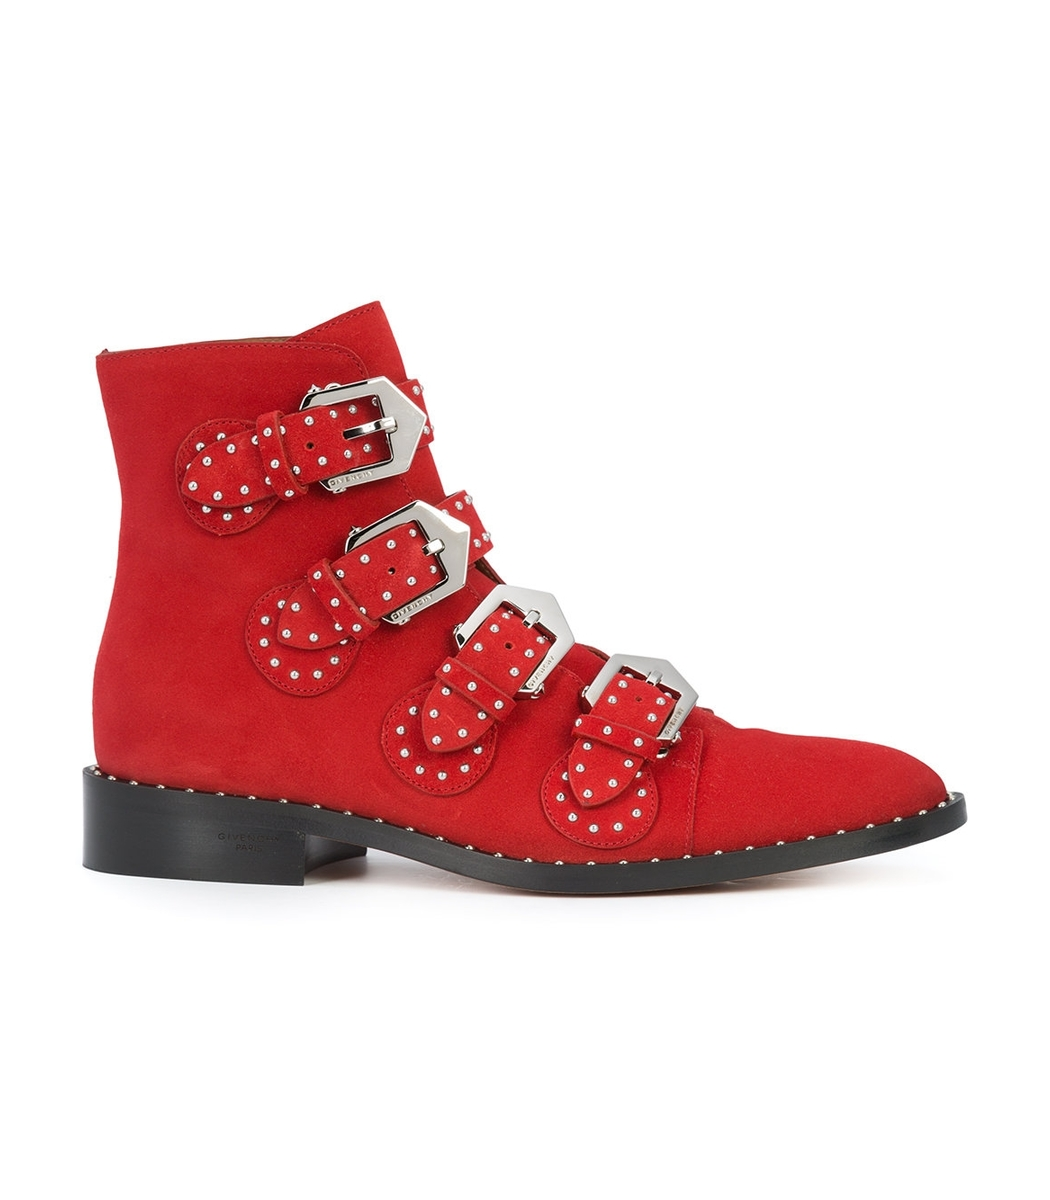 Givenchy Elegant Line Studded Suede Ankle Boots In Red